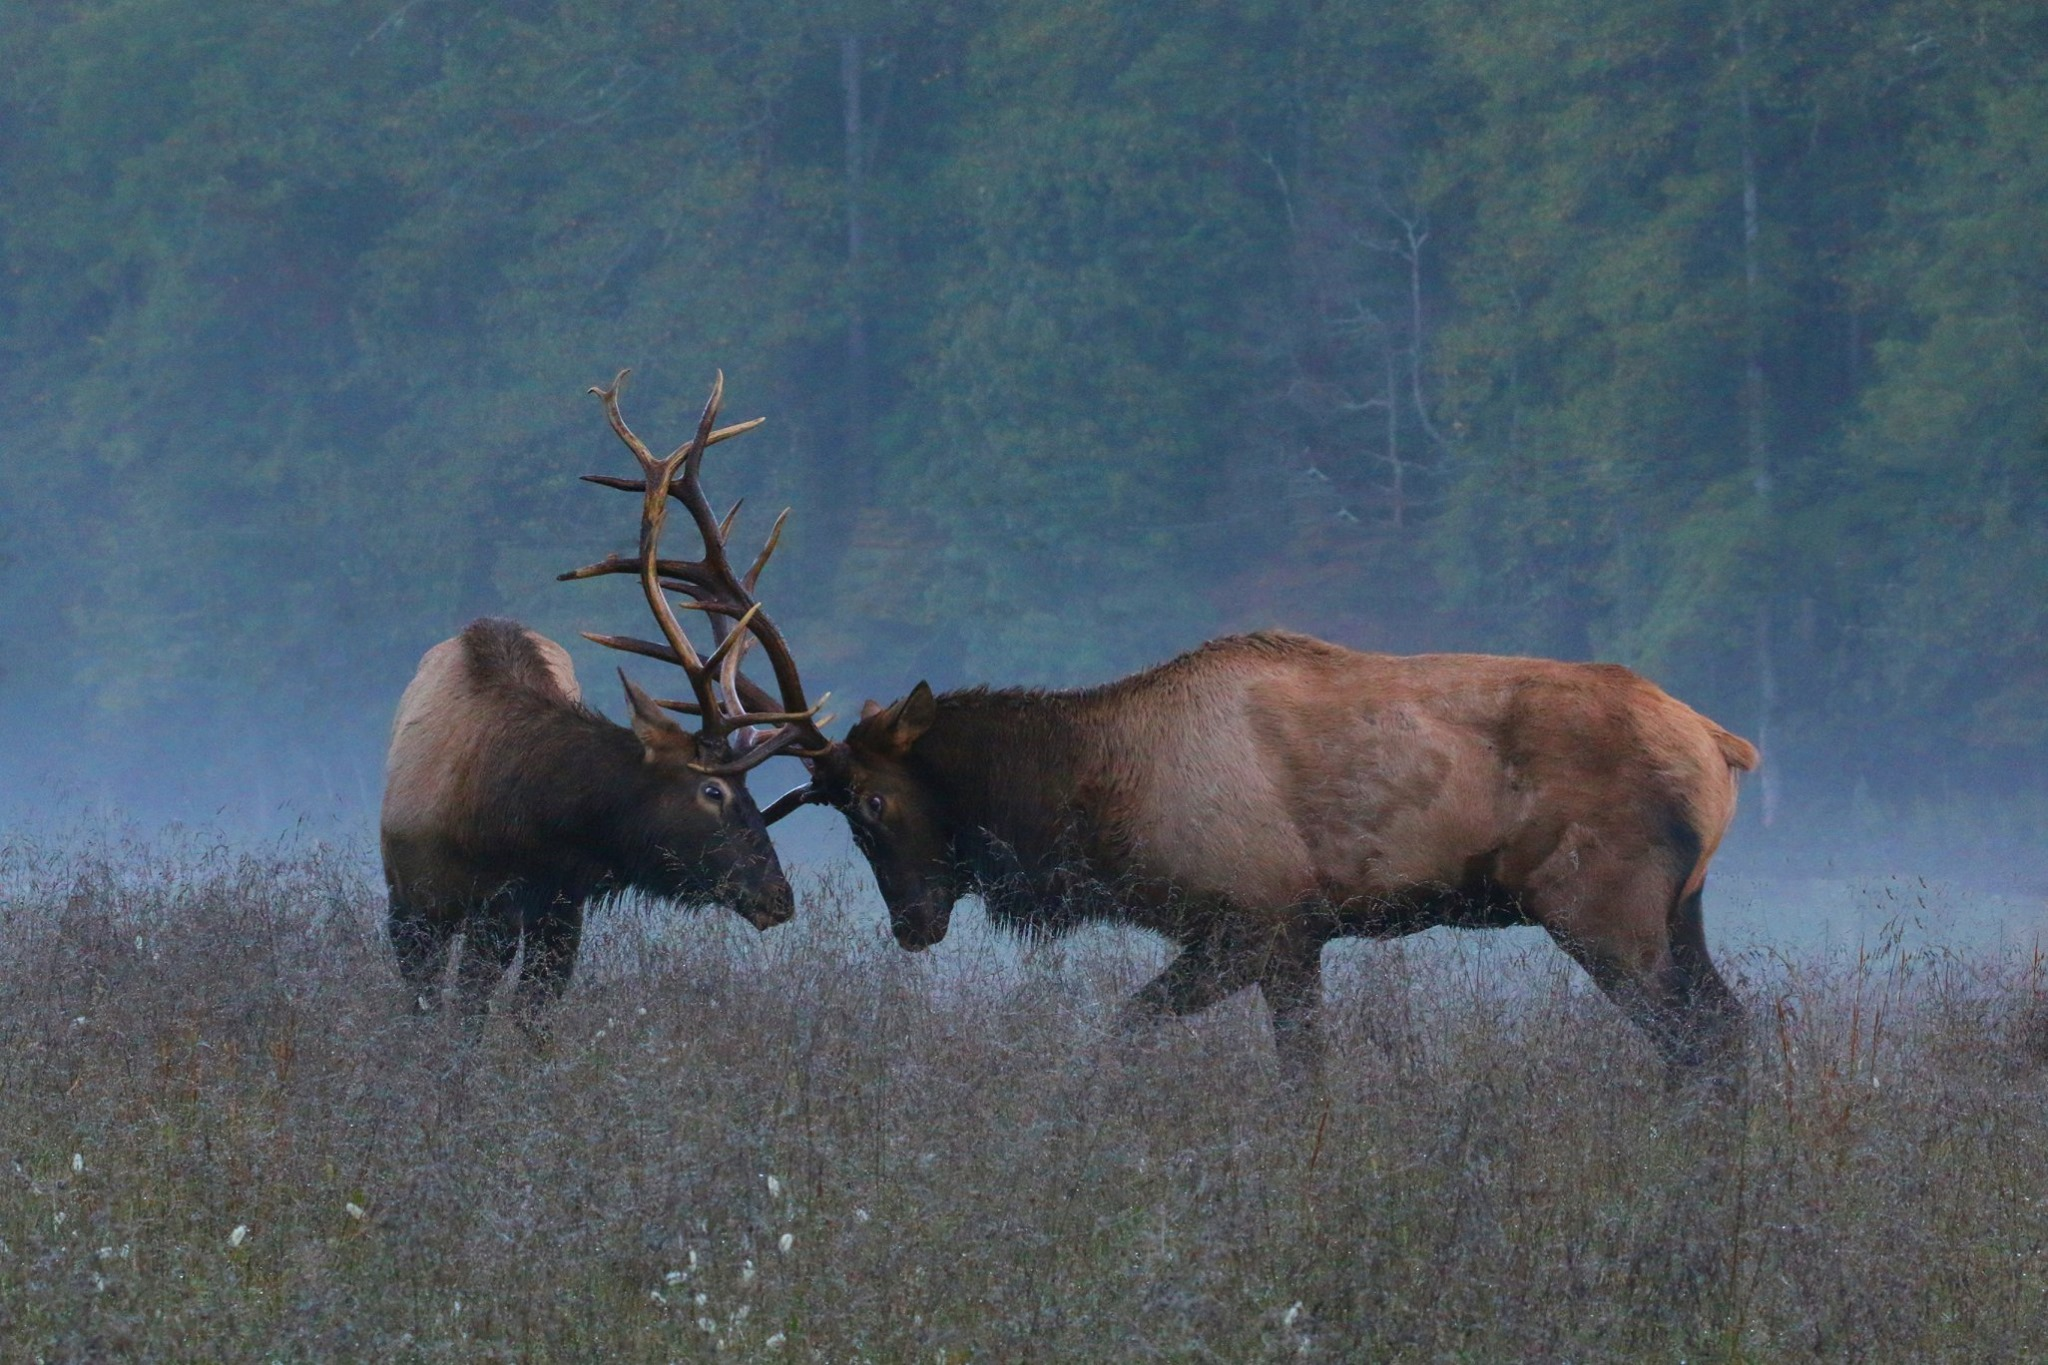 Two bull elks headbutting in the morning fog at Cataloochee Valley | Photo by Adrienne Rainy